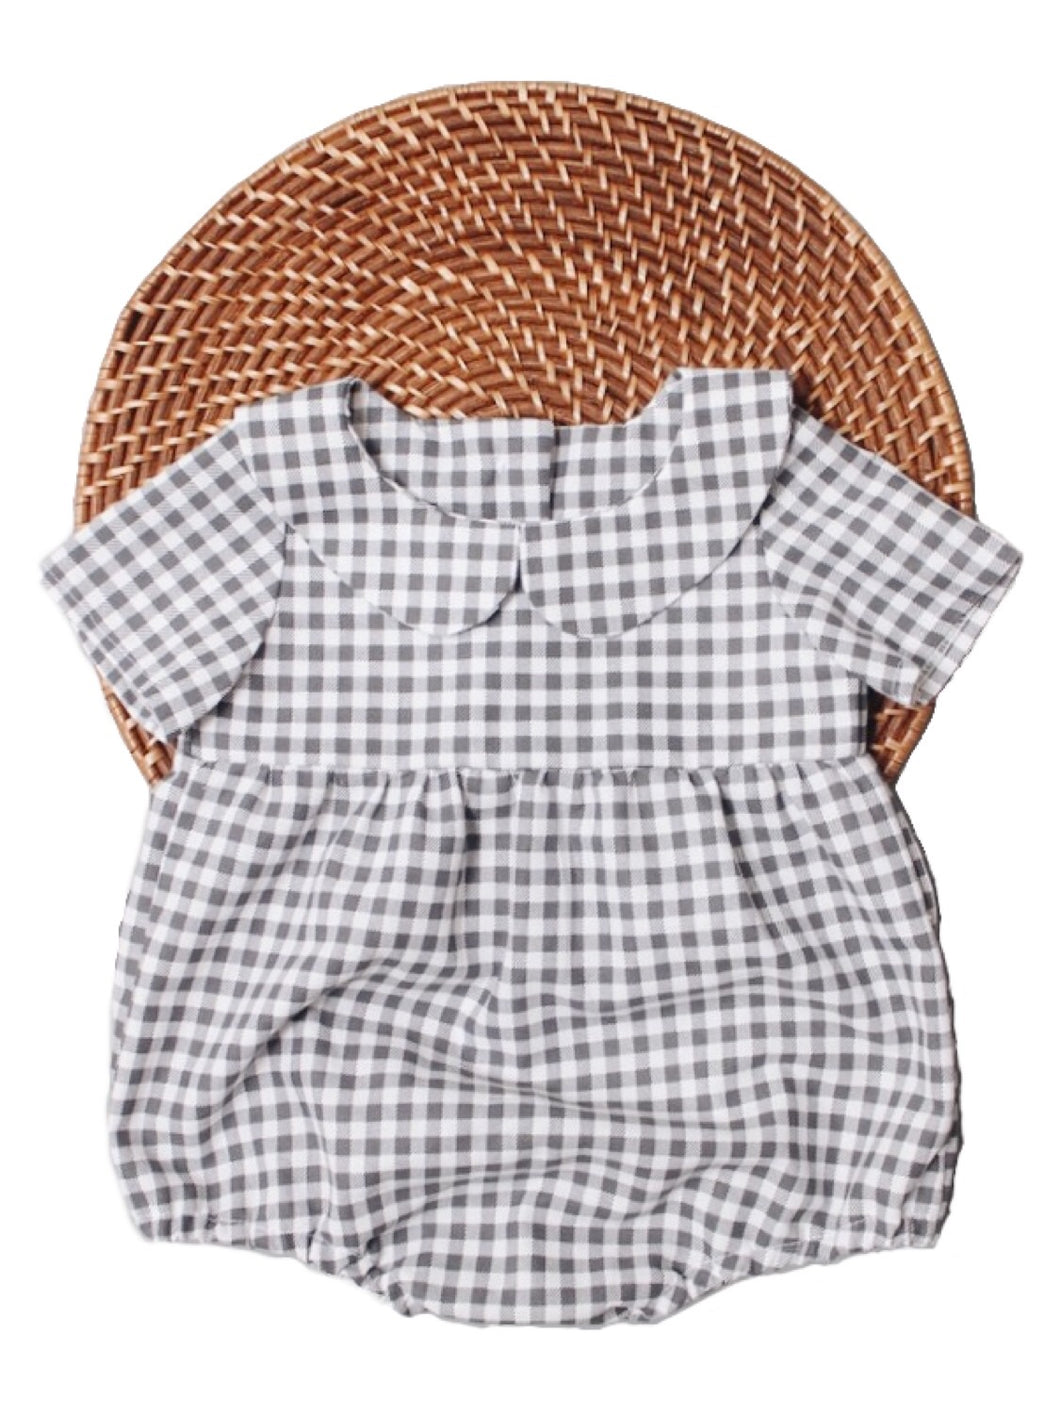 The Collared Joan Romper - Grey Gingham